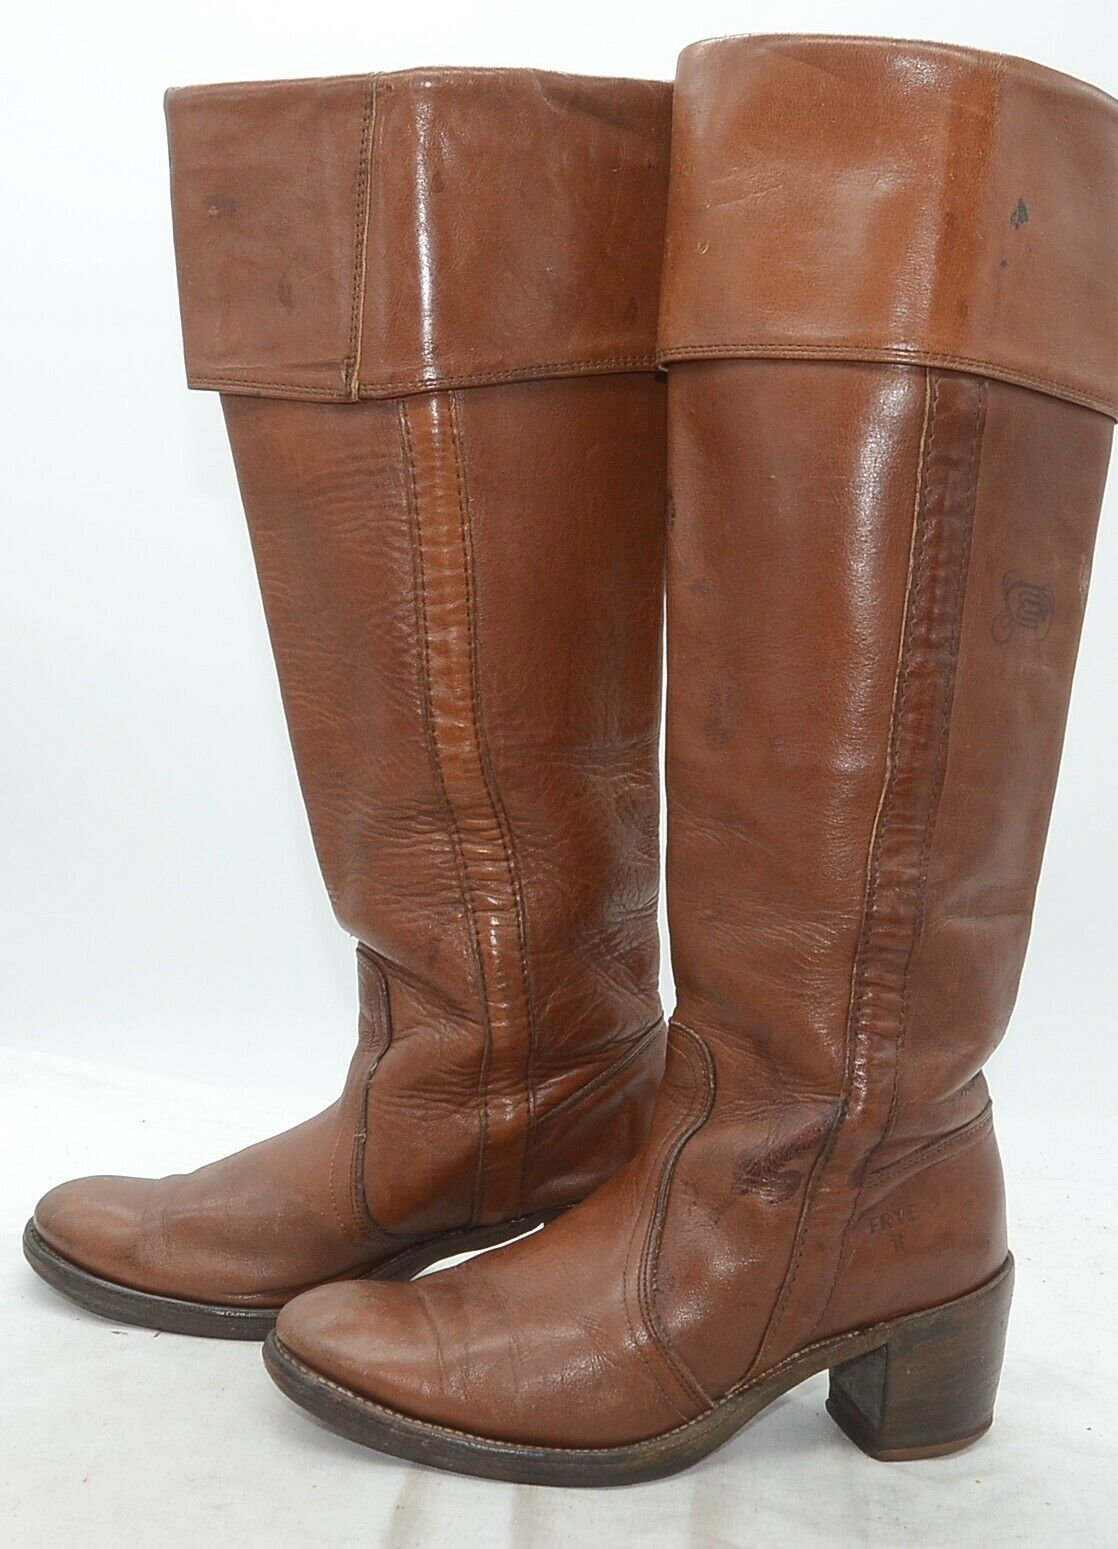 Vtg Frye Boots USA Campus Womens Sz 6 Cuffed Tan Leather Riding Western Boots